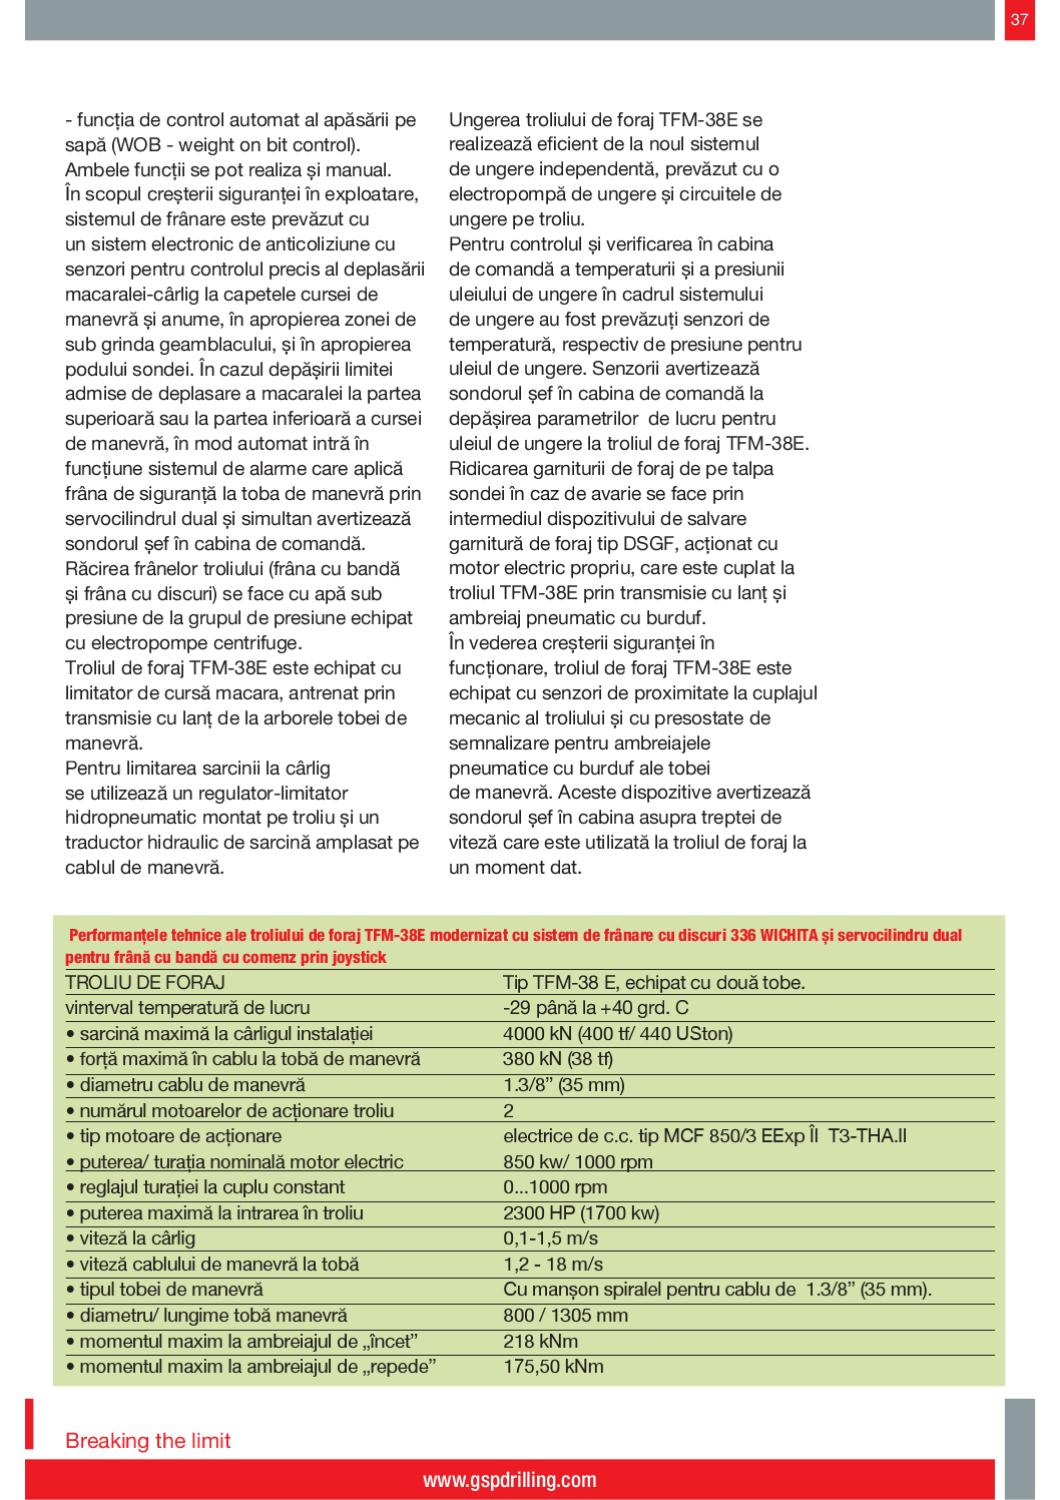 Curierul - Martie 2010 by UPETROM GROUP - issuu